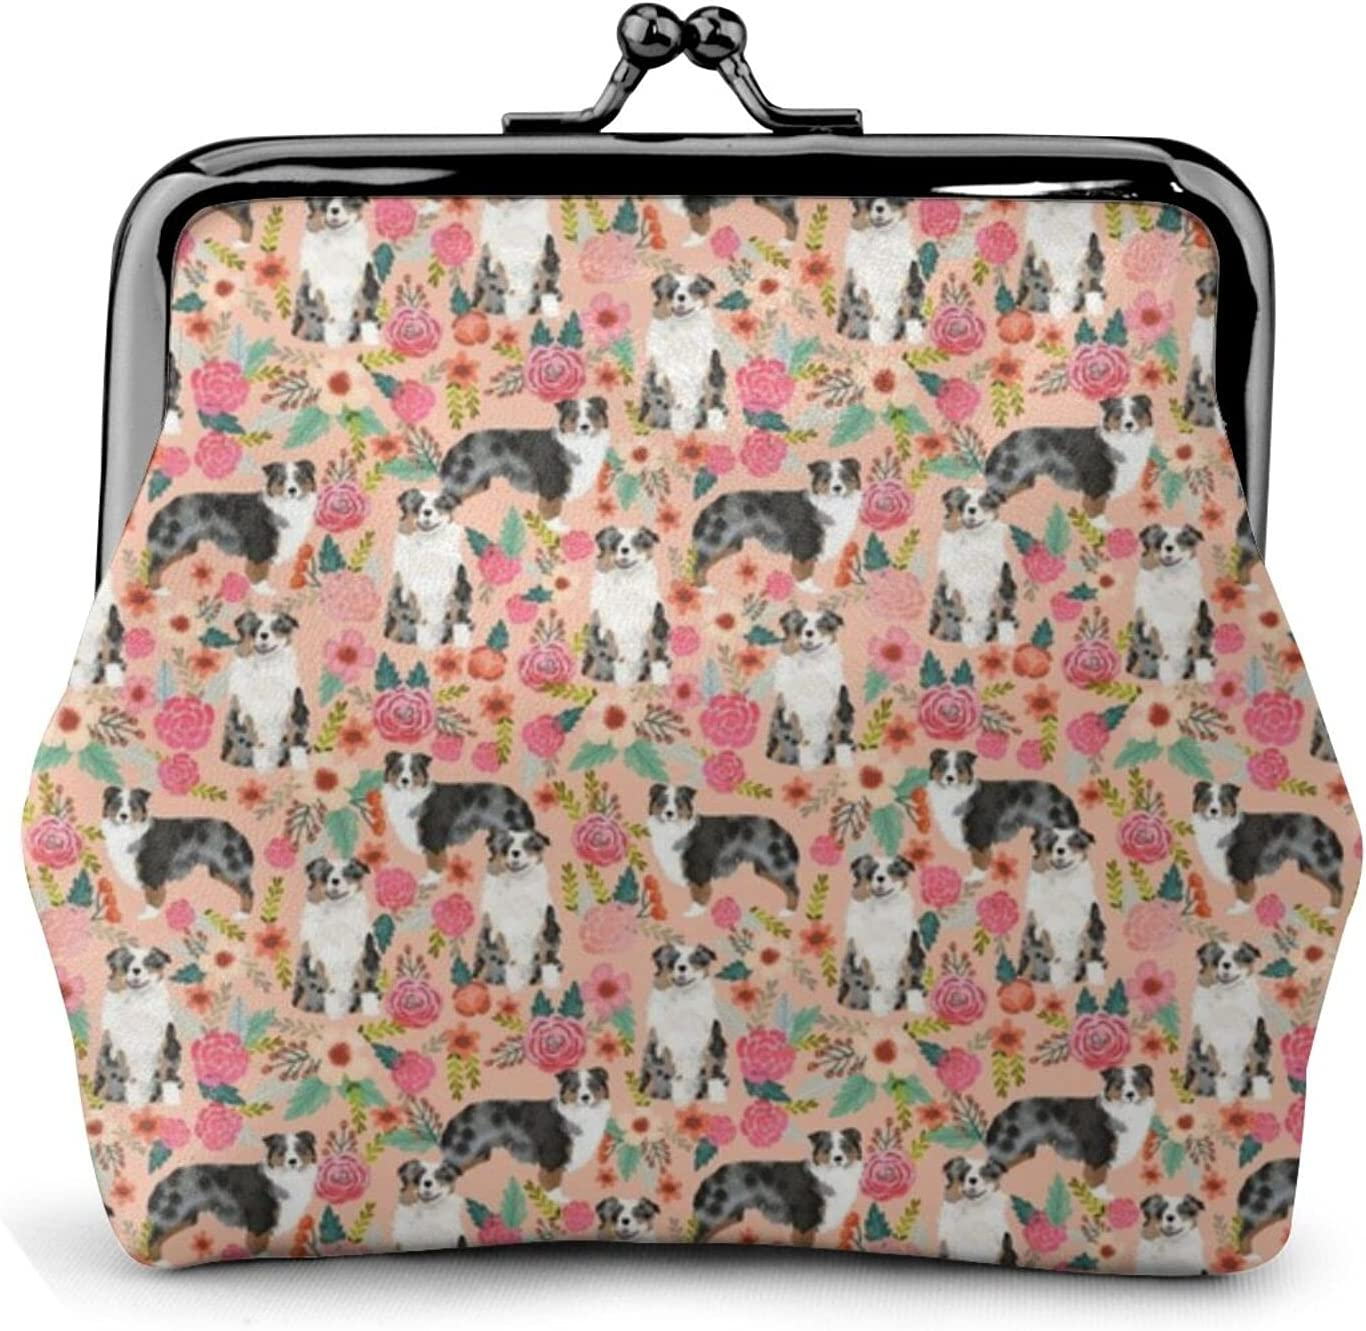 Australian Shepherd Florals 170 Coin Purse Retro Money Pouch with Kiss-lock Buckle Small Wallet for Women and Girls